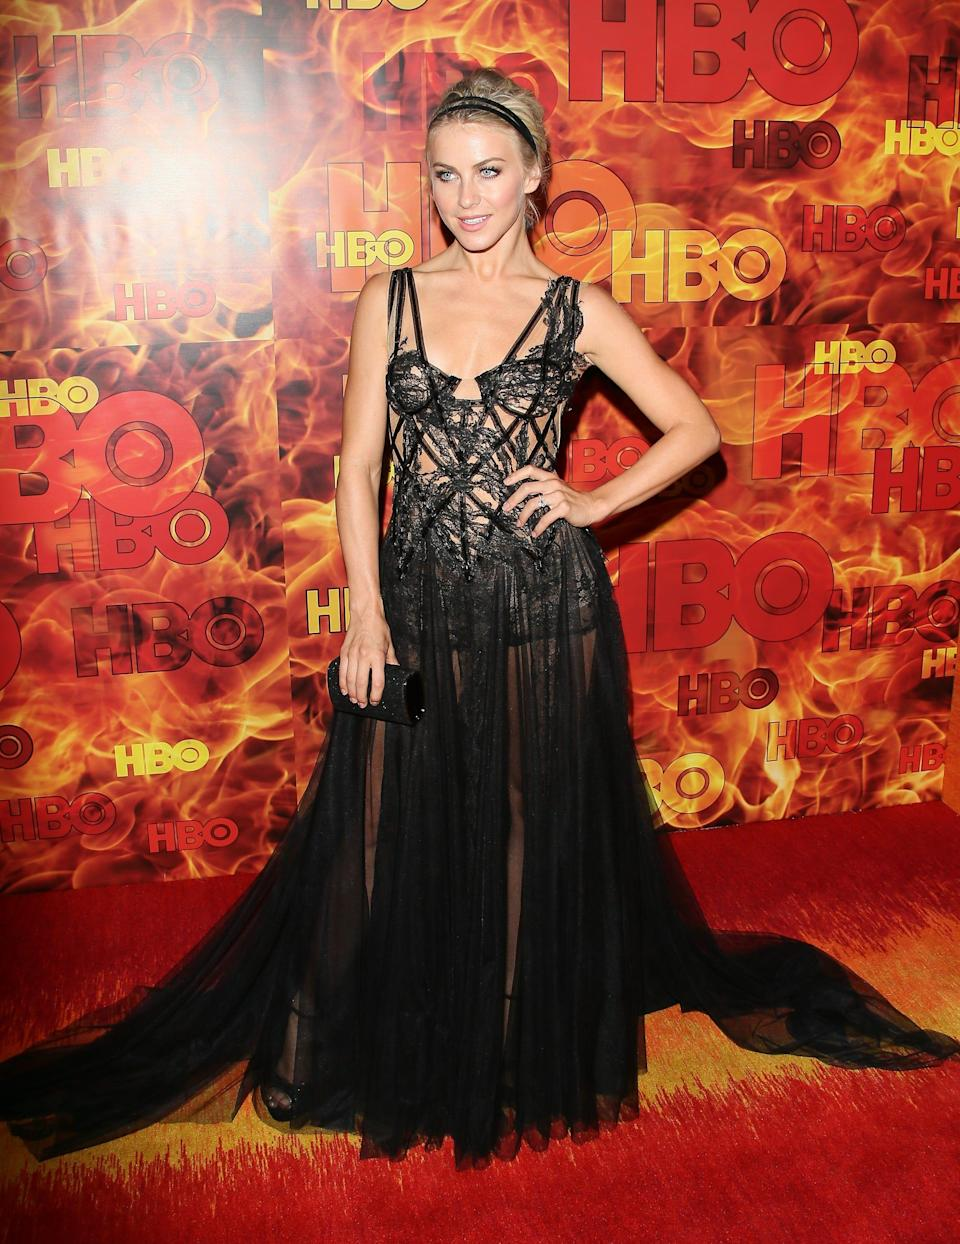 Julianne Hough at the 2015 Emmys in a black partially sheer dress.